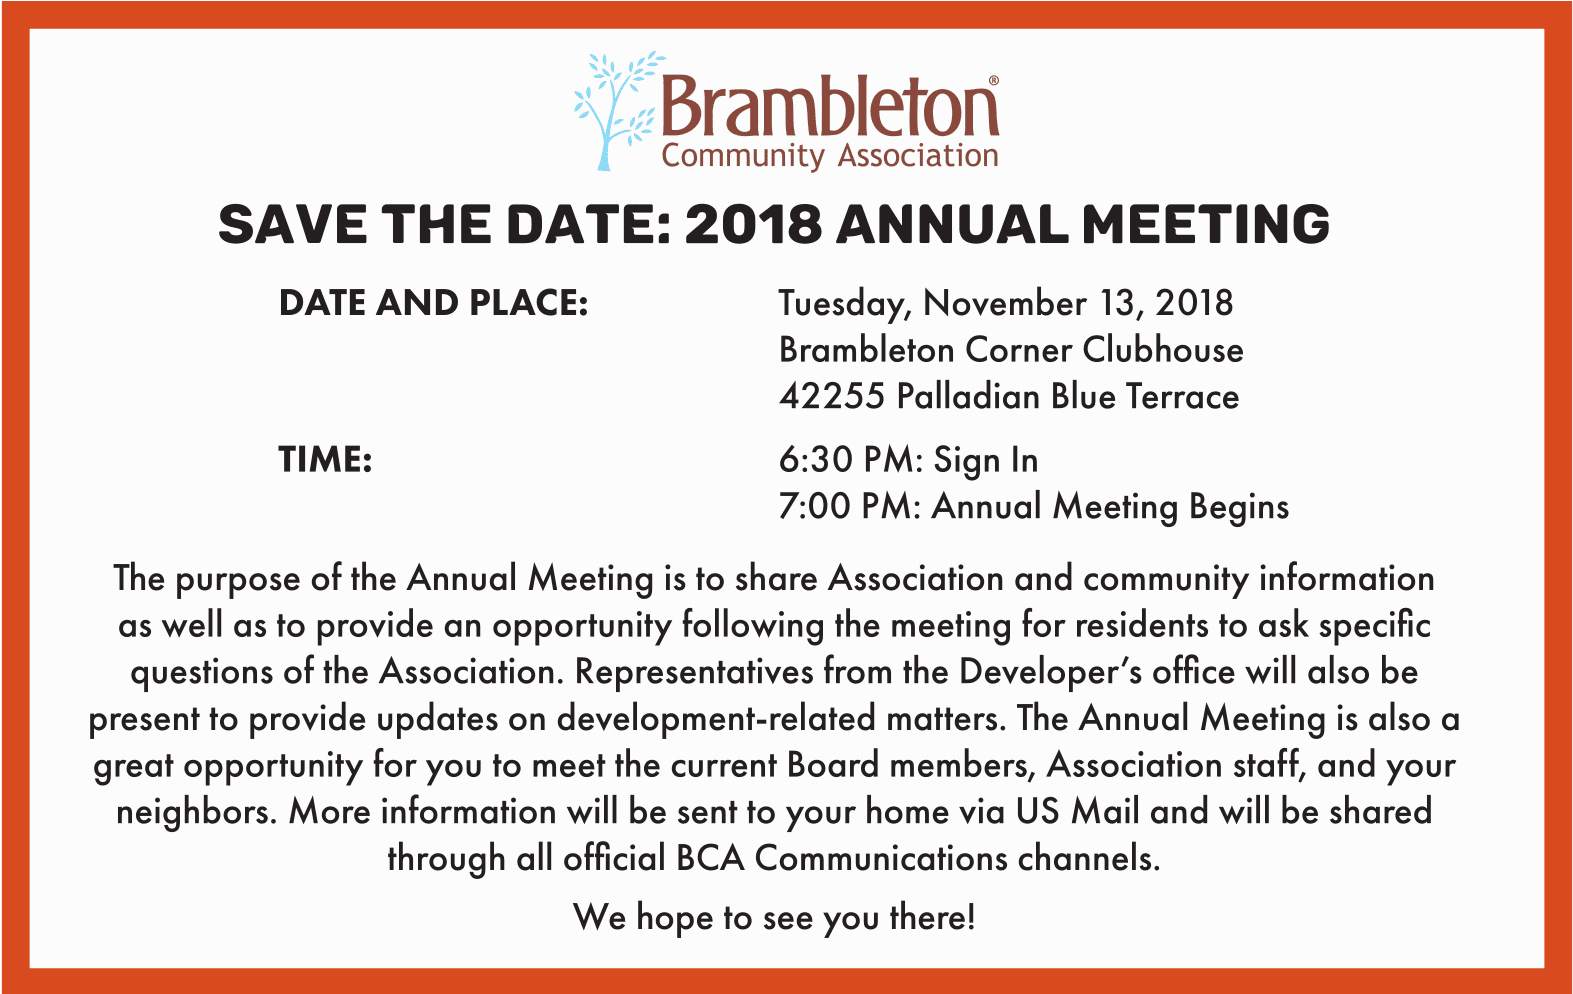 2018 Annual Meeting Announcement